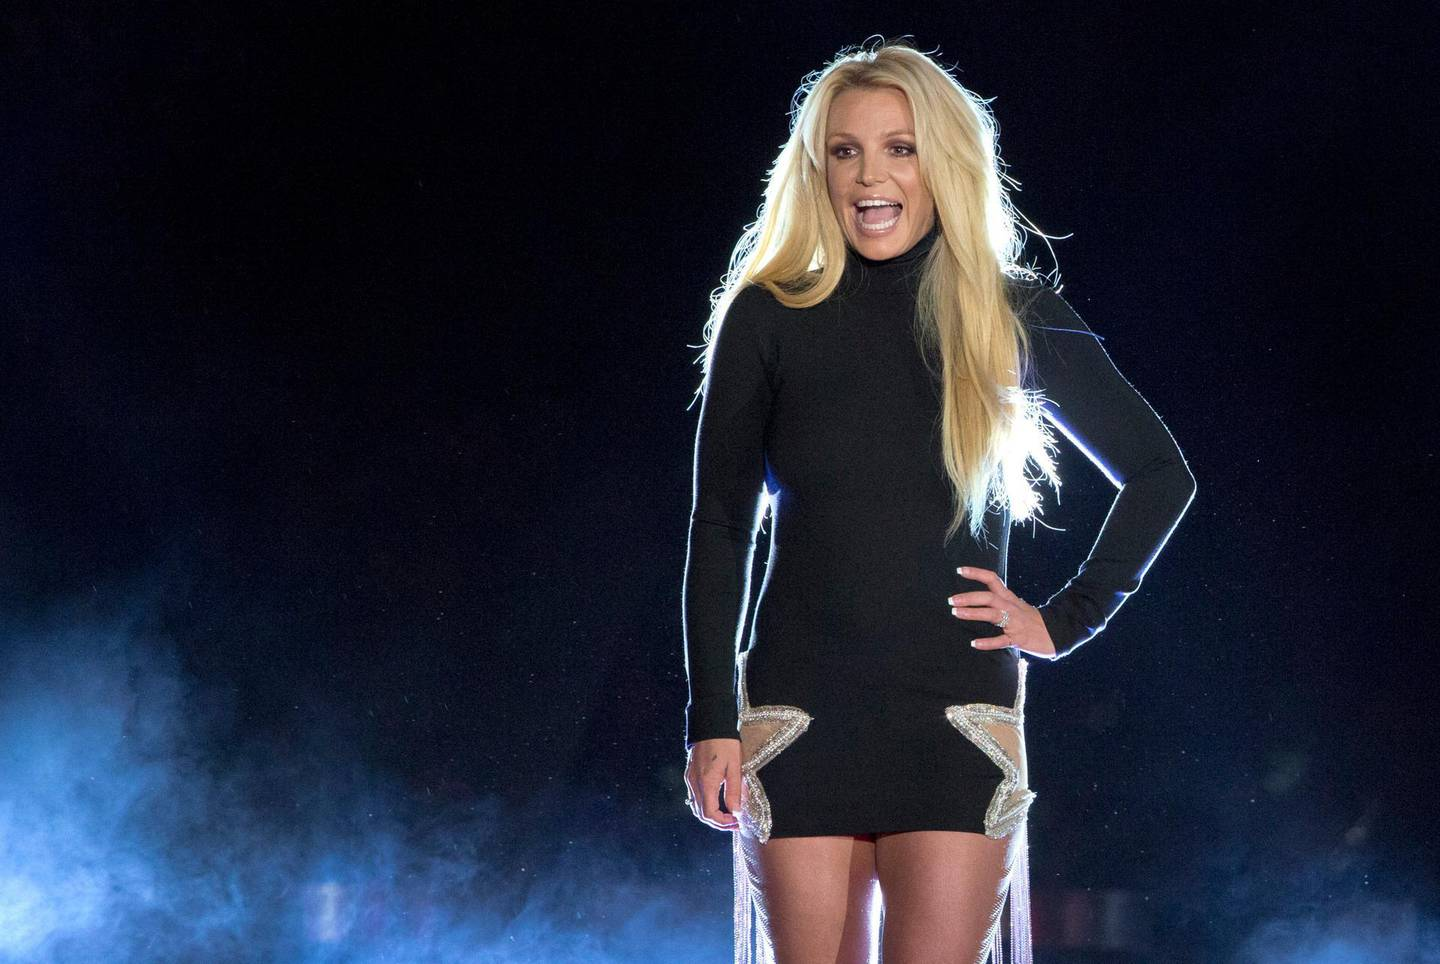 FILE - In this Oct. 18, 2018 file photo singer Britney Spears makes an appearance in front of the Park MGM hotel-casino in Las Vegas. Spears is putting her planned Las Vegas residency on hold to focus on her father's recovery from a recent life-threatening illness. The pop superstar announced Friday, Jan. 4, 2019 she is going on an indefinite work hiatus. (Steve Marcus/Las Vegas Sun via AP,File)